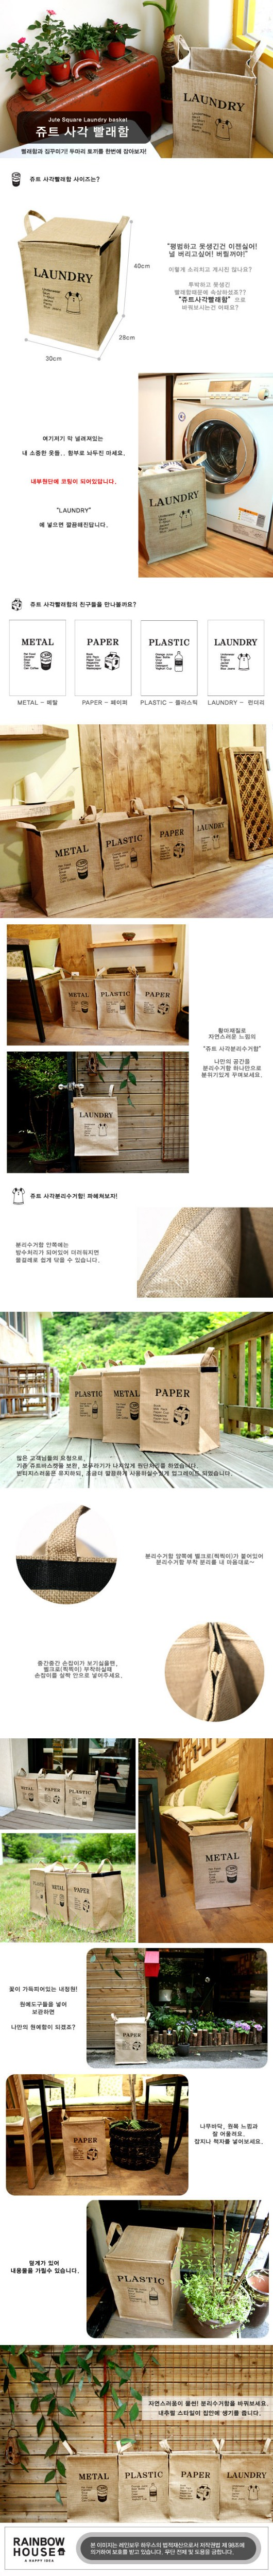 2016 Style Keep Calm And Carry On Jute Storage Basket Portable Pe Schematic Also Usha Table Fan Cg Windmill 1992 Toyota Waterproof Household Sundries Box Dirty Clothes Us609